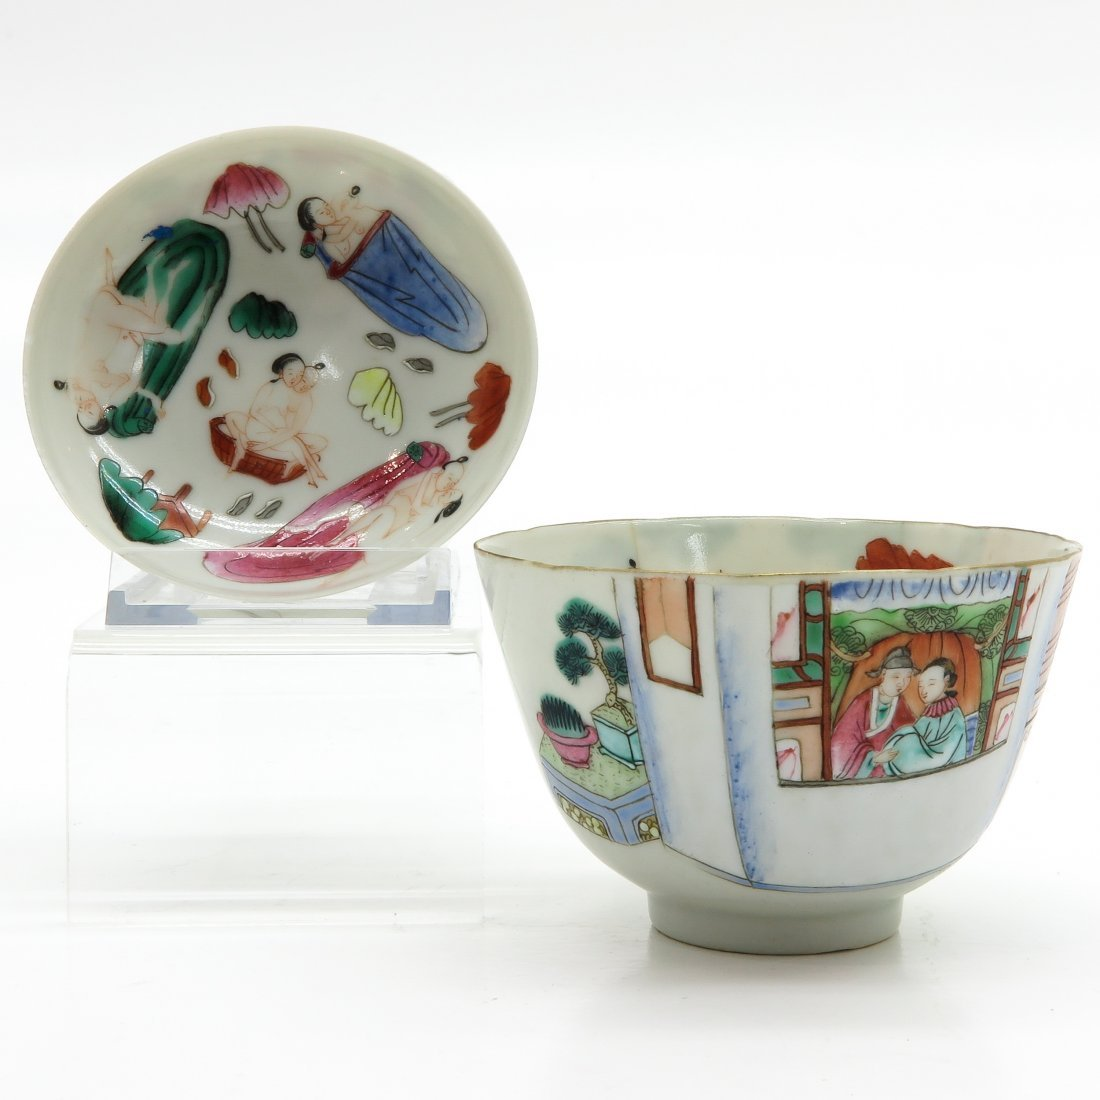 A Rare 19th Century Covered Cup with Erotic Decor